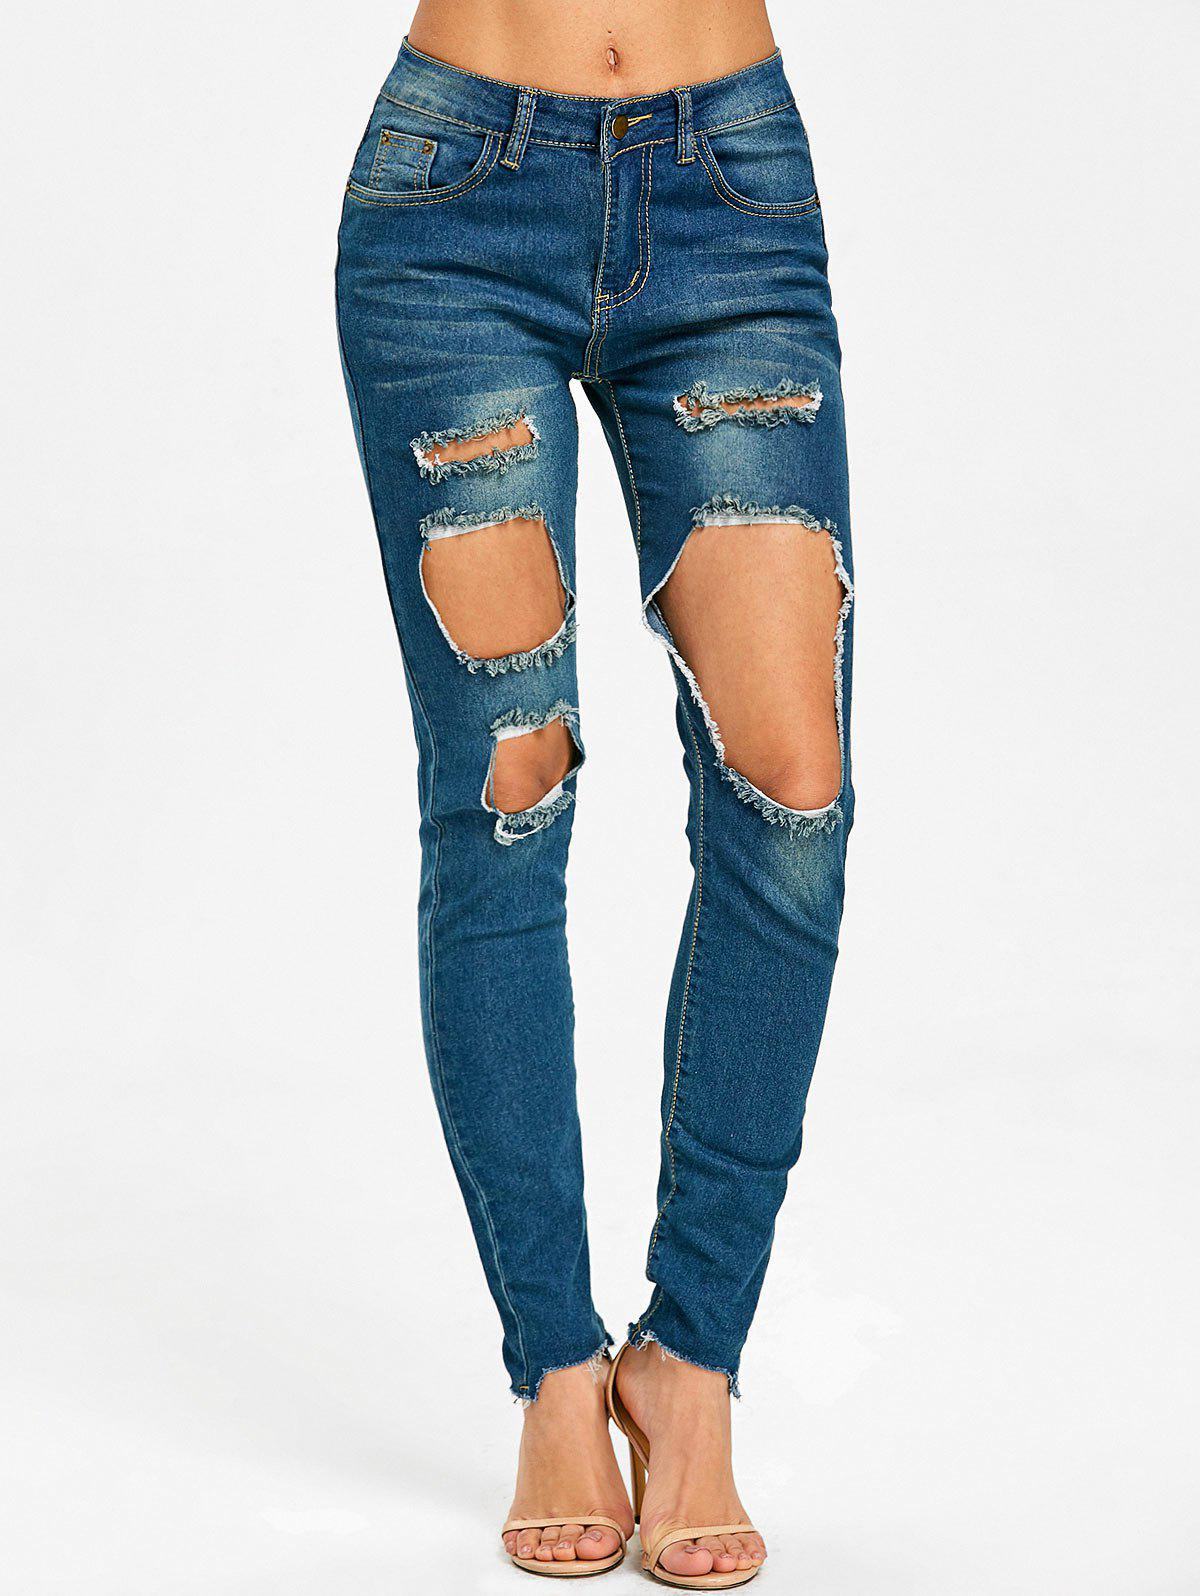 Skinny Frayed Destroyed Jeans - BLUE XL